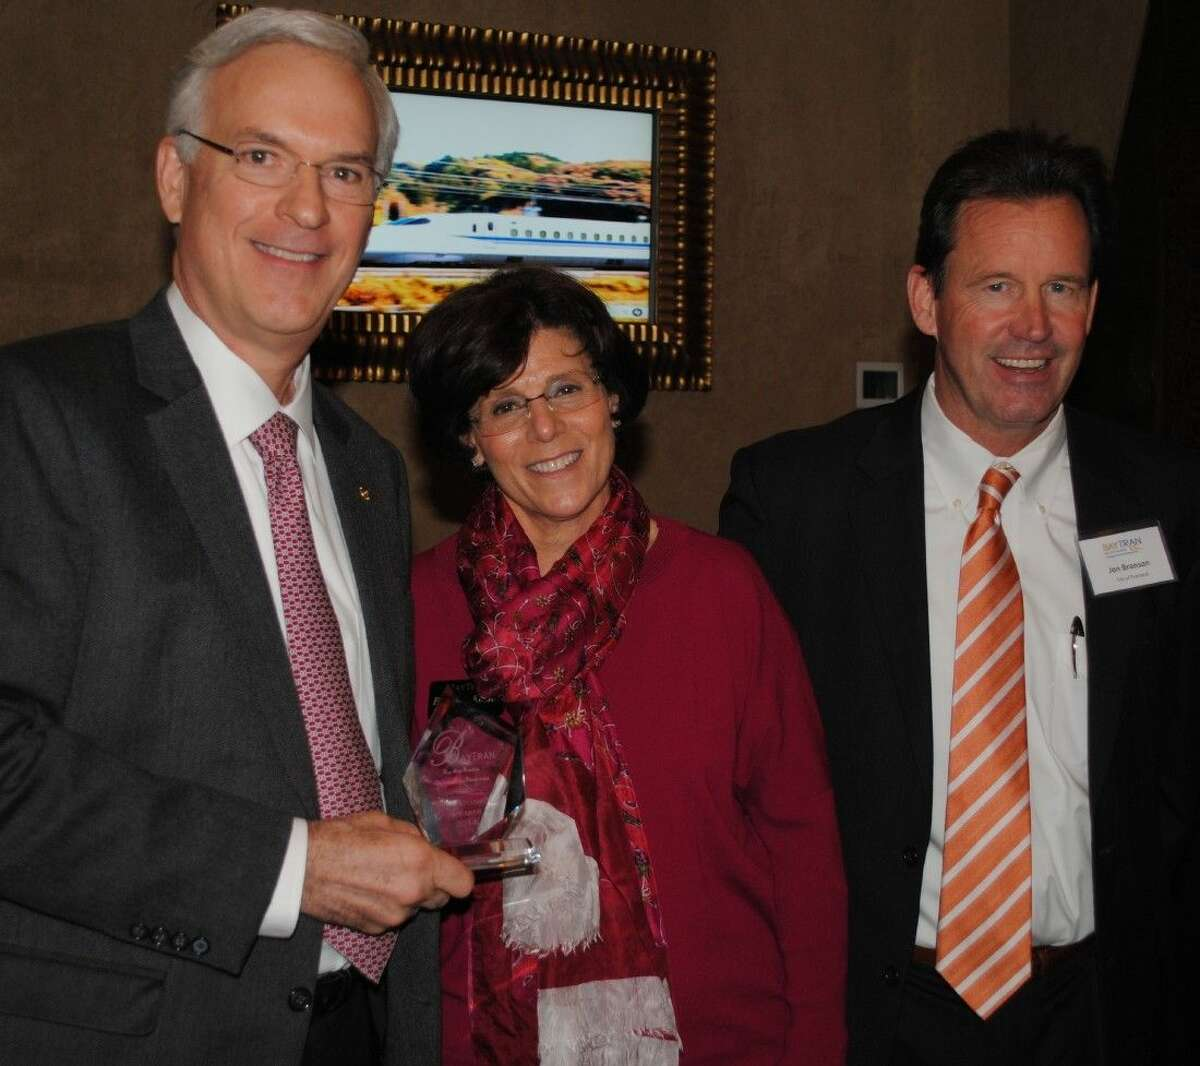 Bay Area Houston Transportation Partnership President Barbara Koslov and Chairman Jon Branson, right, greet former Harris County Judge Robert Eckels as he arrives at Cullen's Upscale Grille to address BayTran's monthly luncheon on the proposed high-speed rail line between Houston and Dallas.